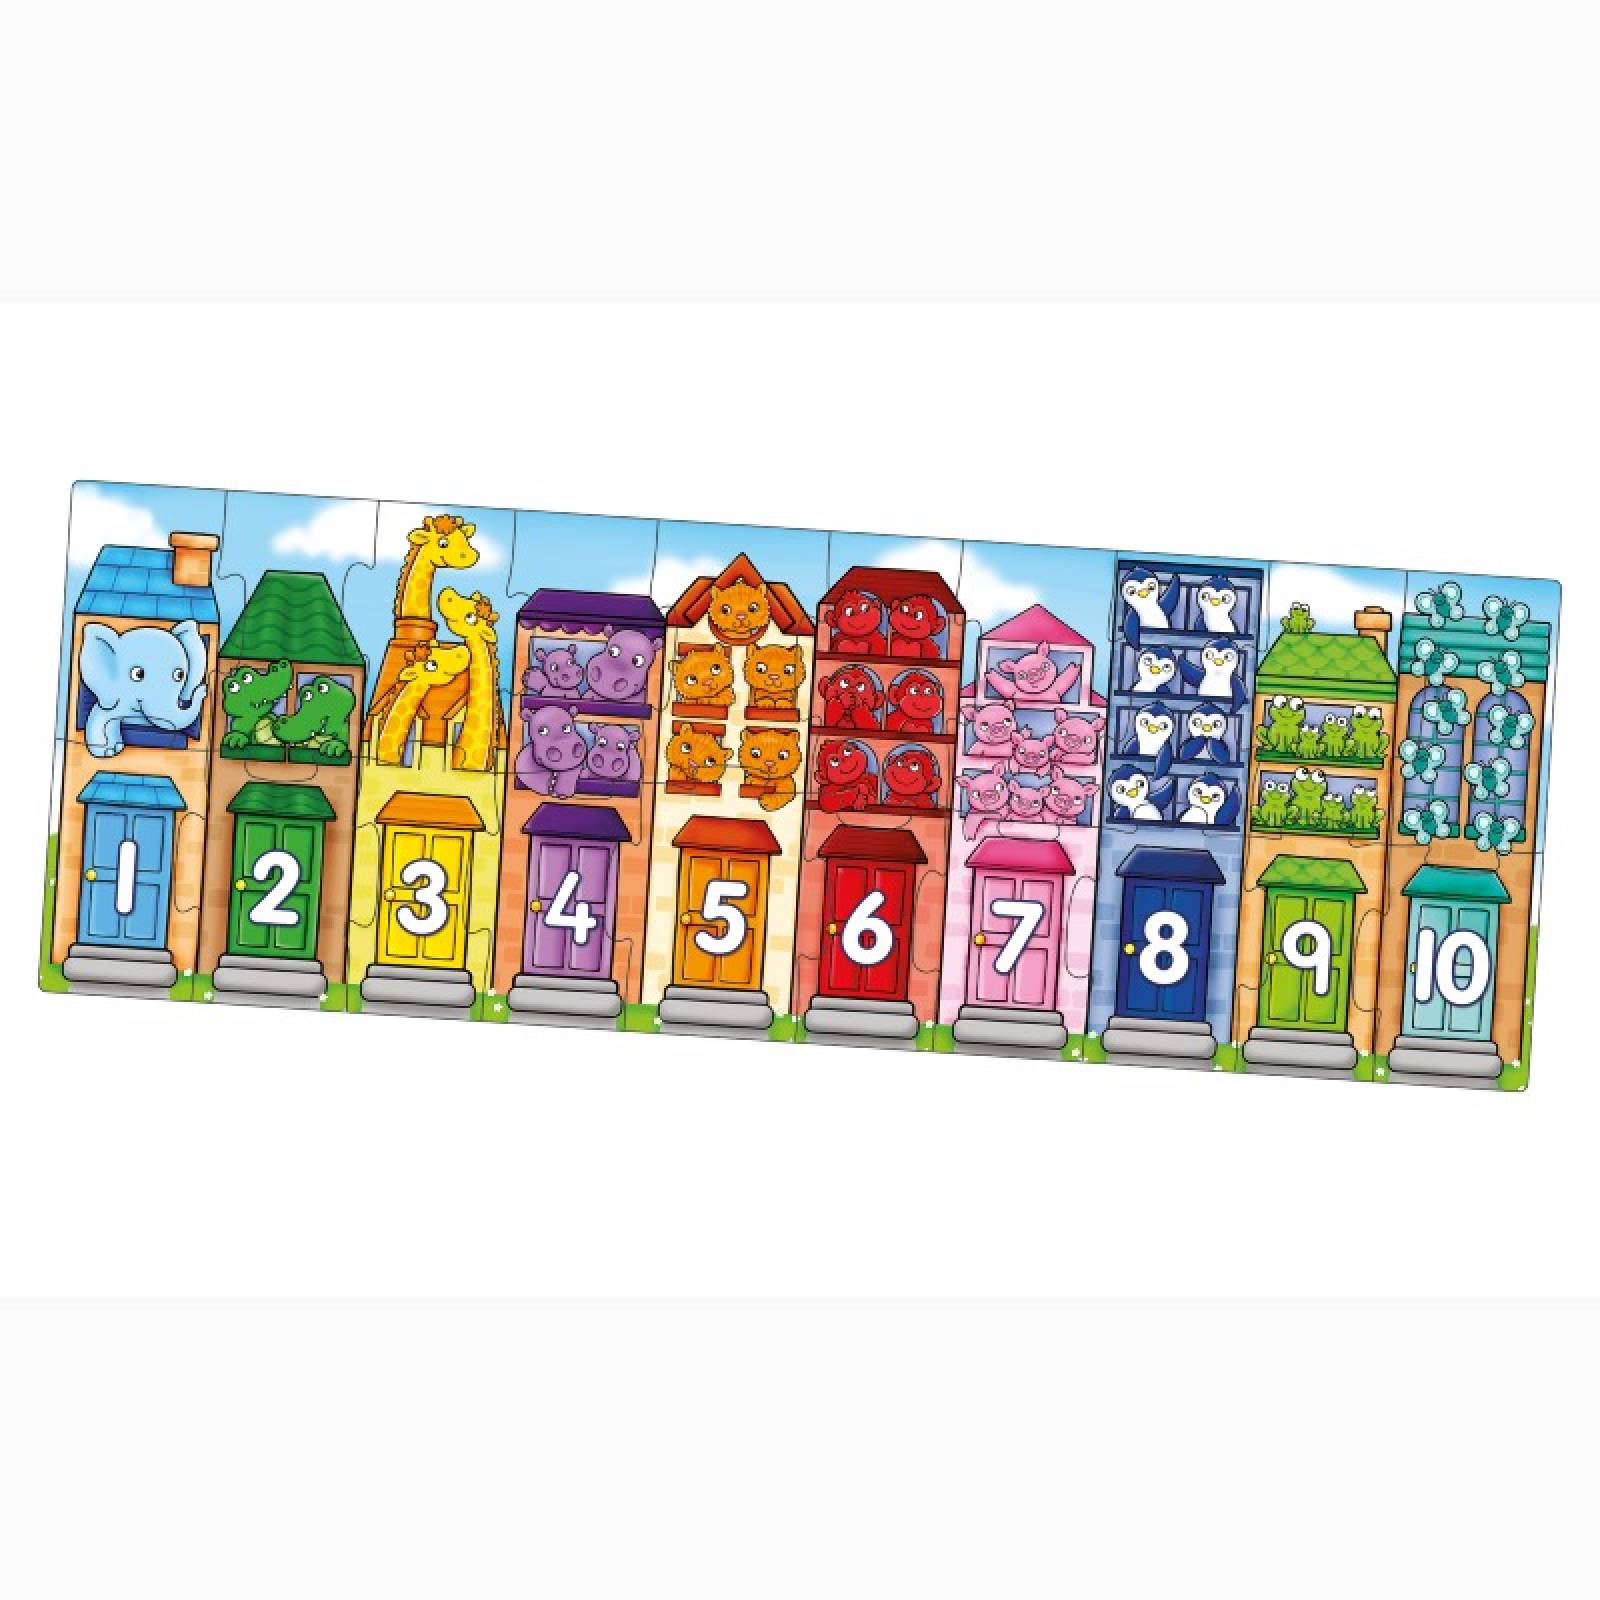 Number Street - 20 Piece Jigsaw Puzzle By Orchard Toy 2+ thumbnails